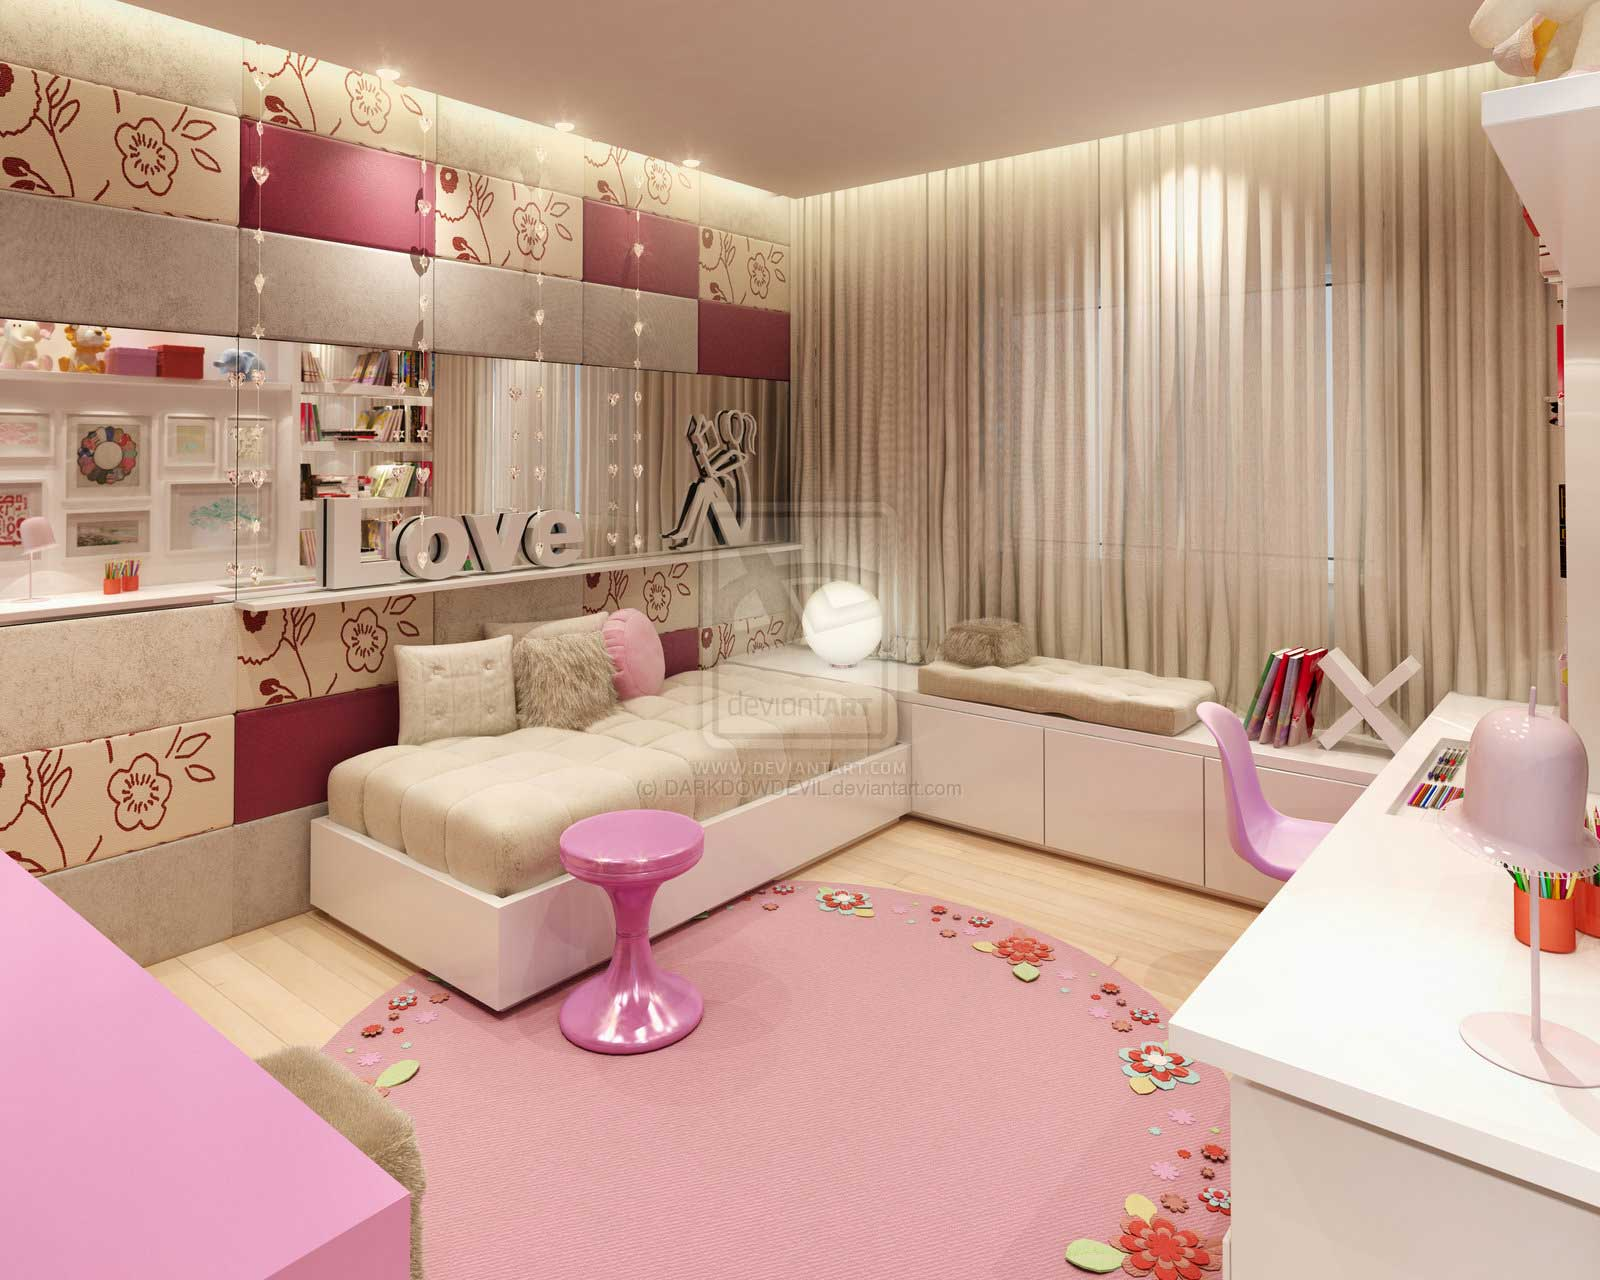 Cool Ideas For Teen Bedrooms Comfort Pink Girl Bedroom By Darkdowdevil Interior